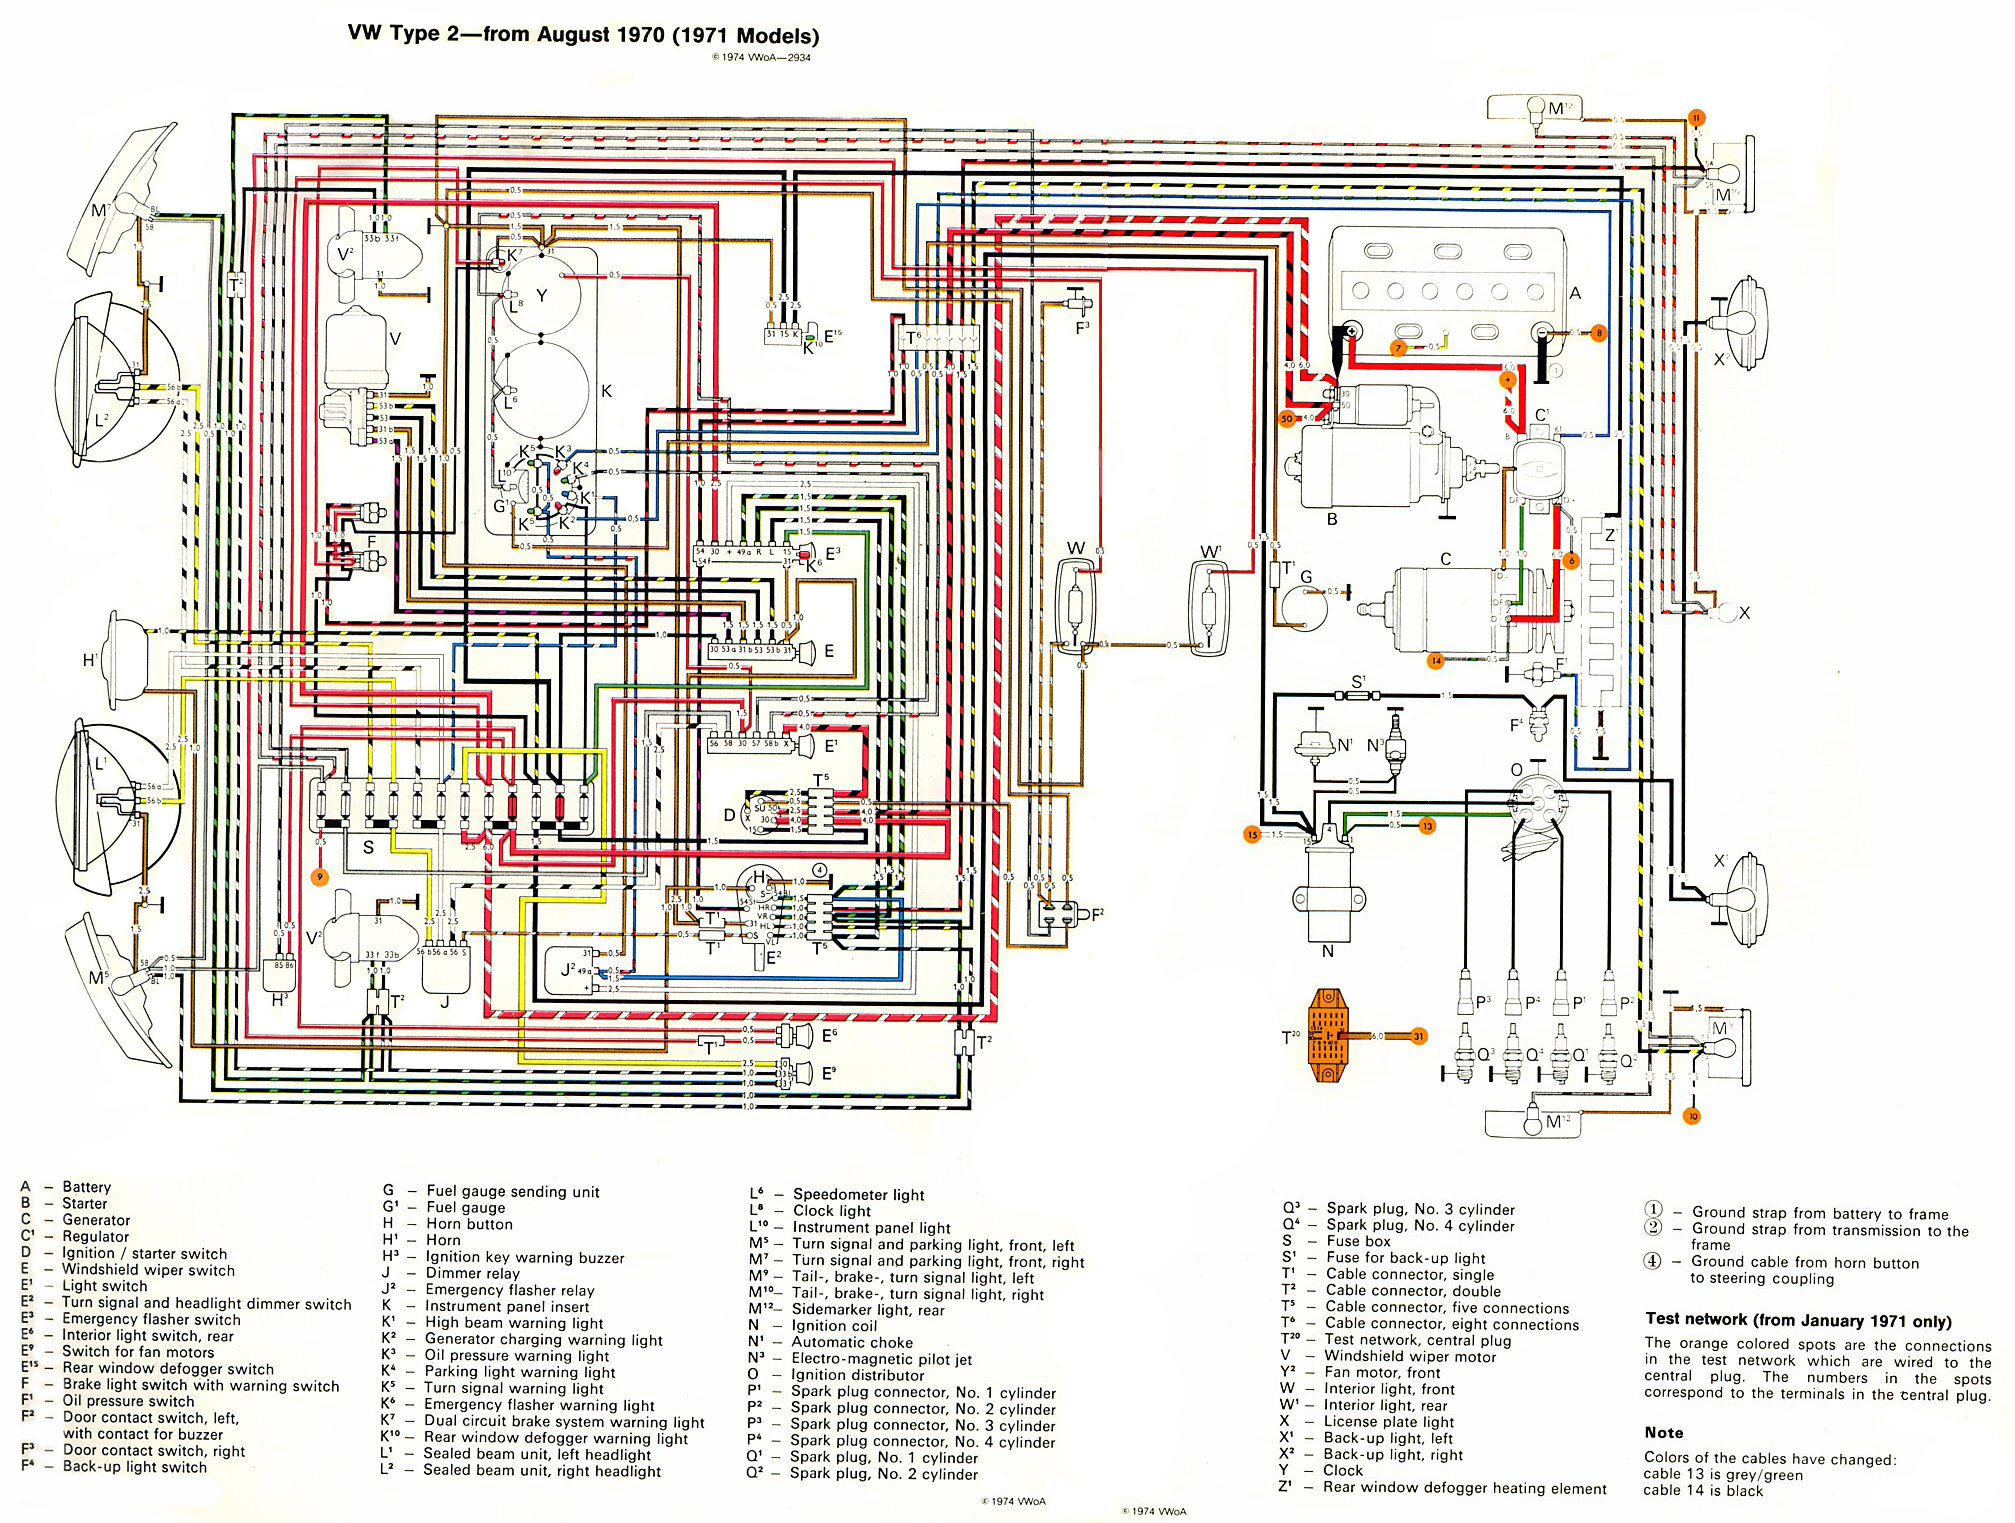 baybus_71_fixed thesamba com type 2 wiring diagrams Spark Plug Wiring Diagram at mifinder.co